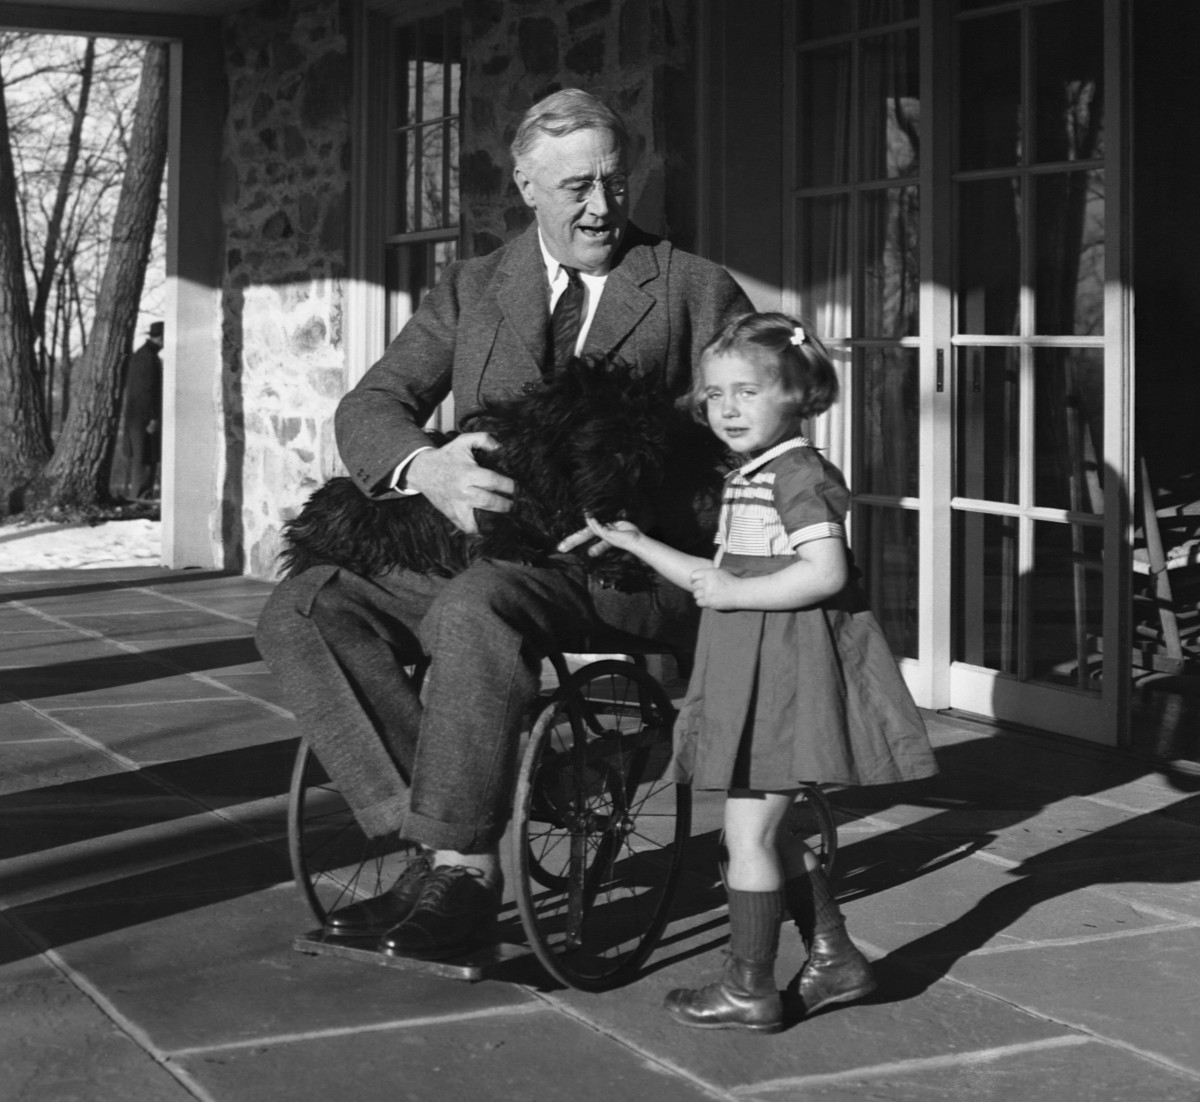 Franklin Roosevelt holds his Scotch terrier, Fala, on his lap as he talks to Ruthie Bie, the daughter of the Hyde Park caretaker